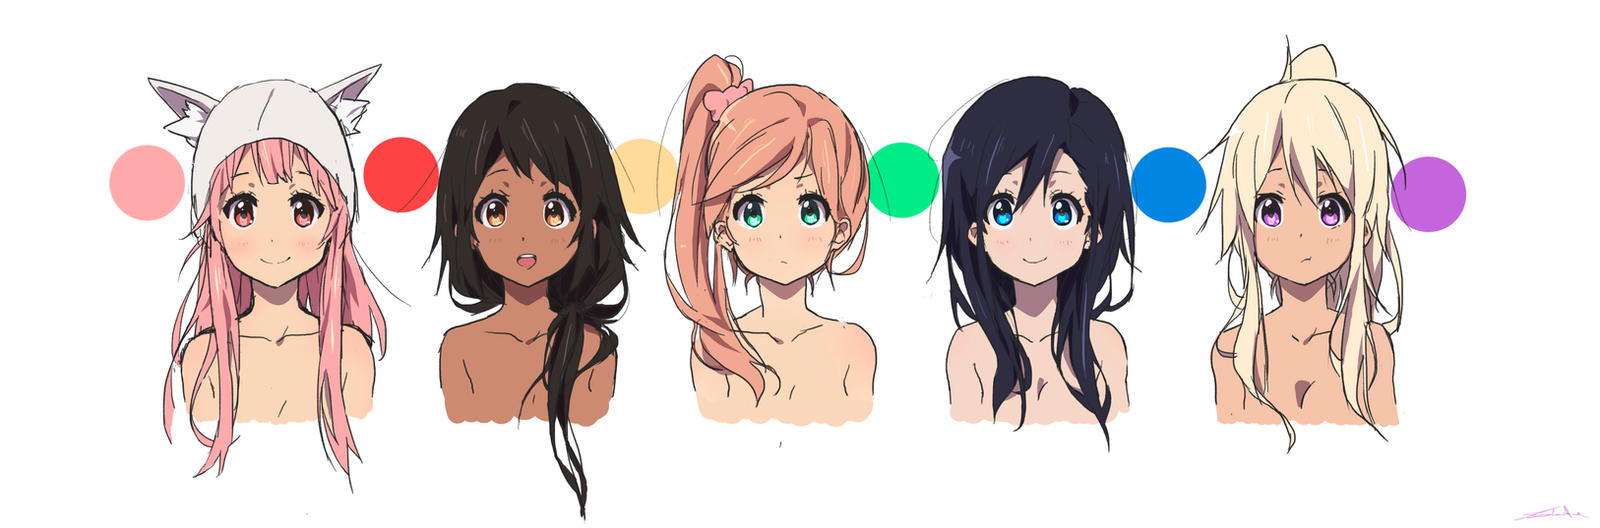 Design Your Anime Character Game : Female characters by moxie d on deviantart